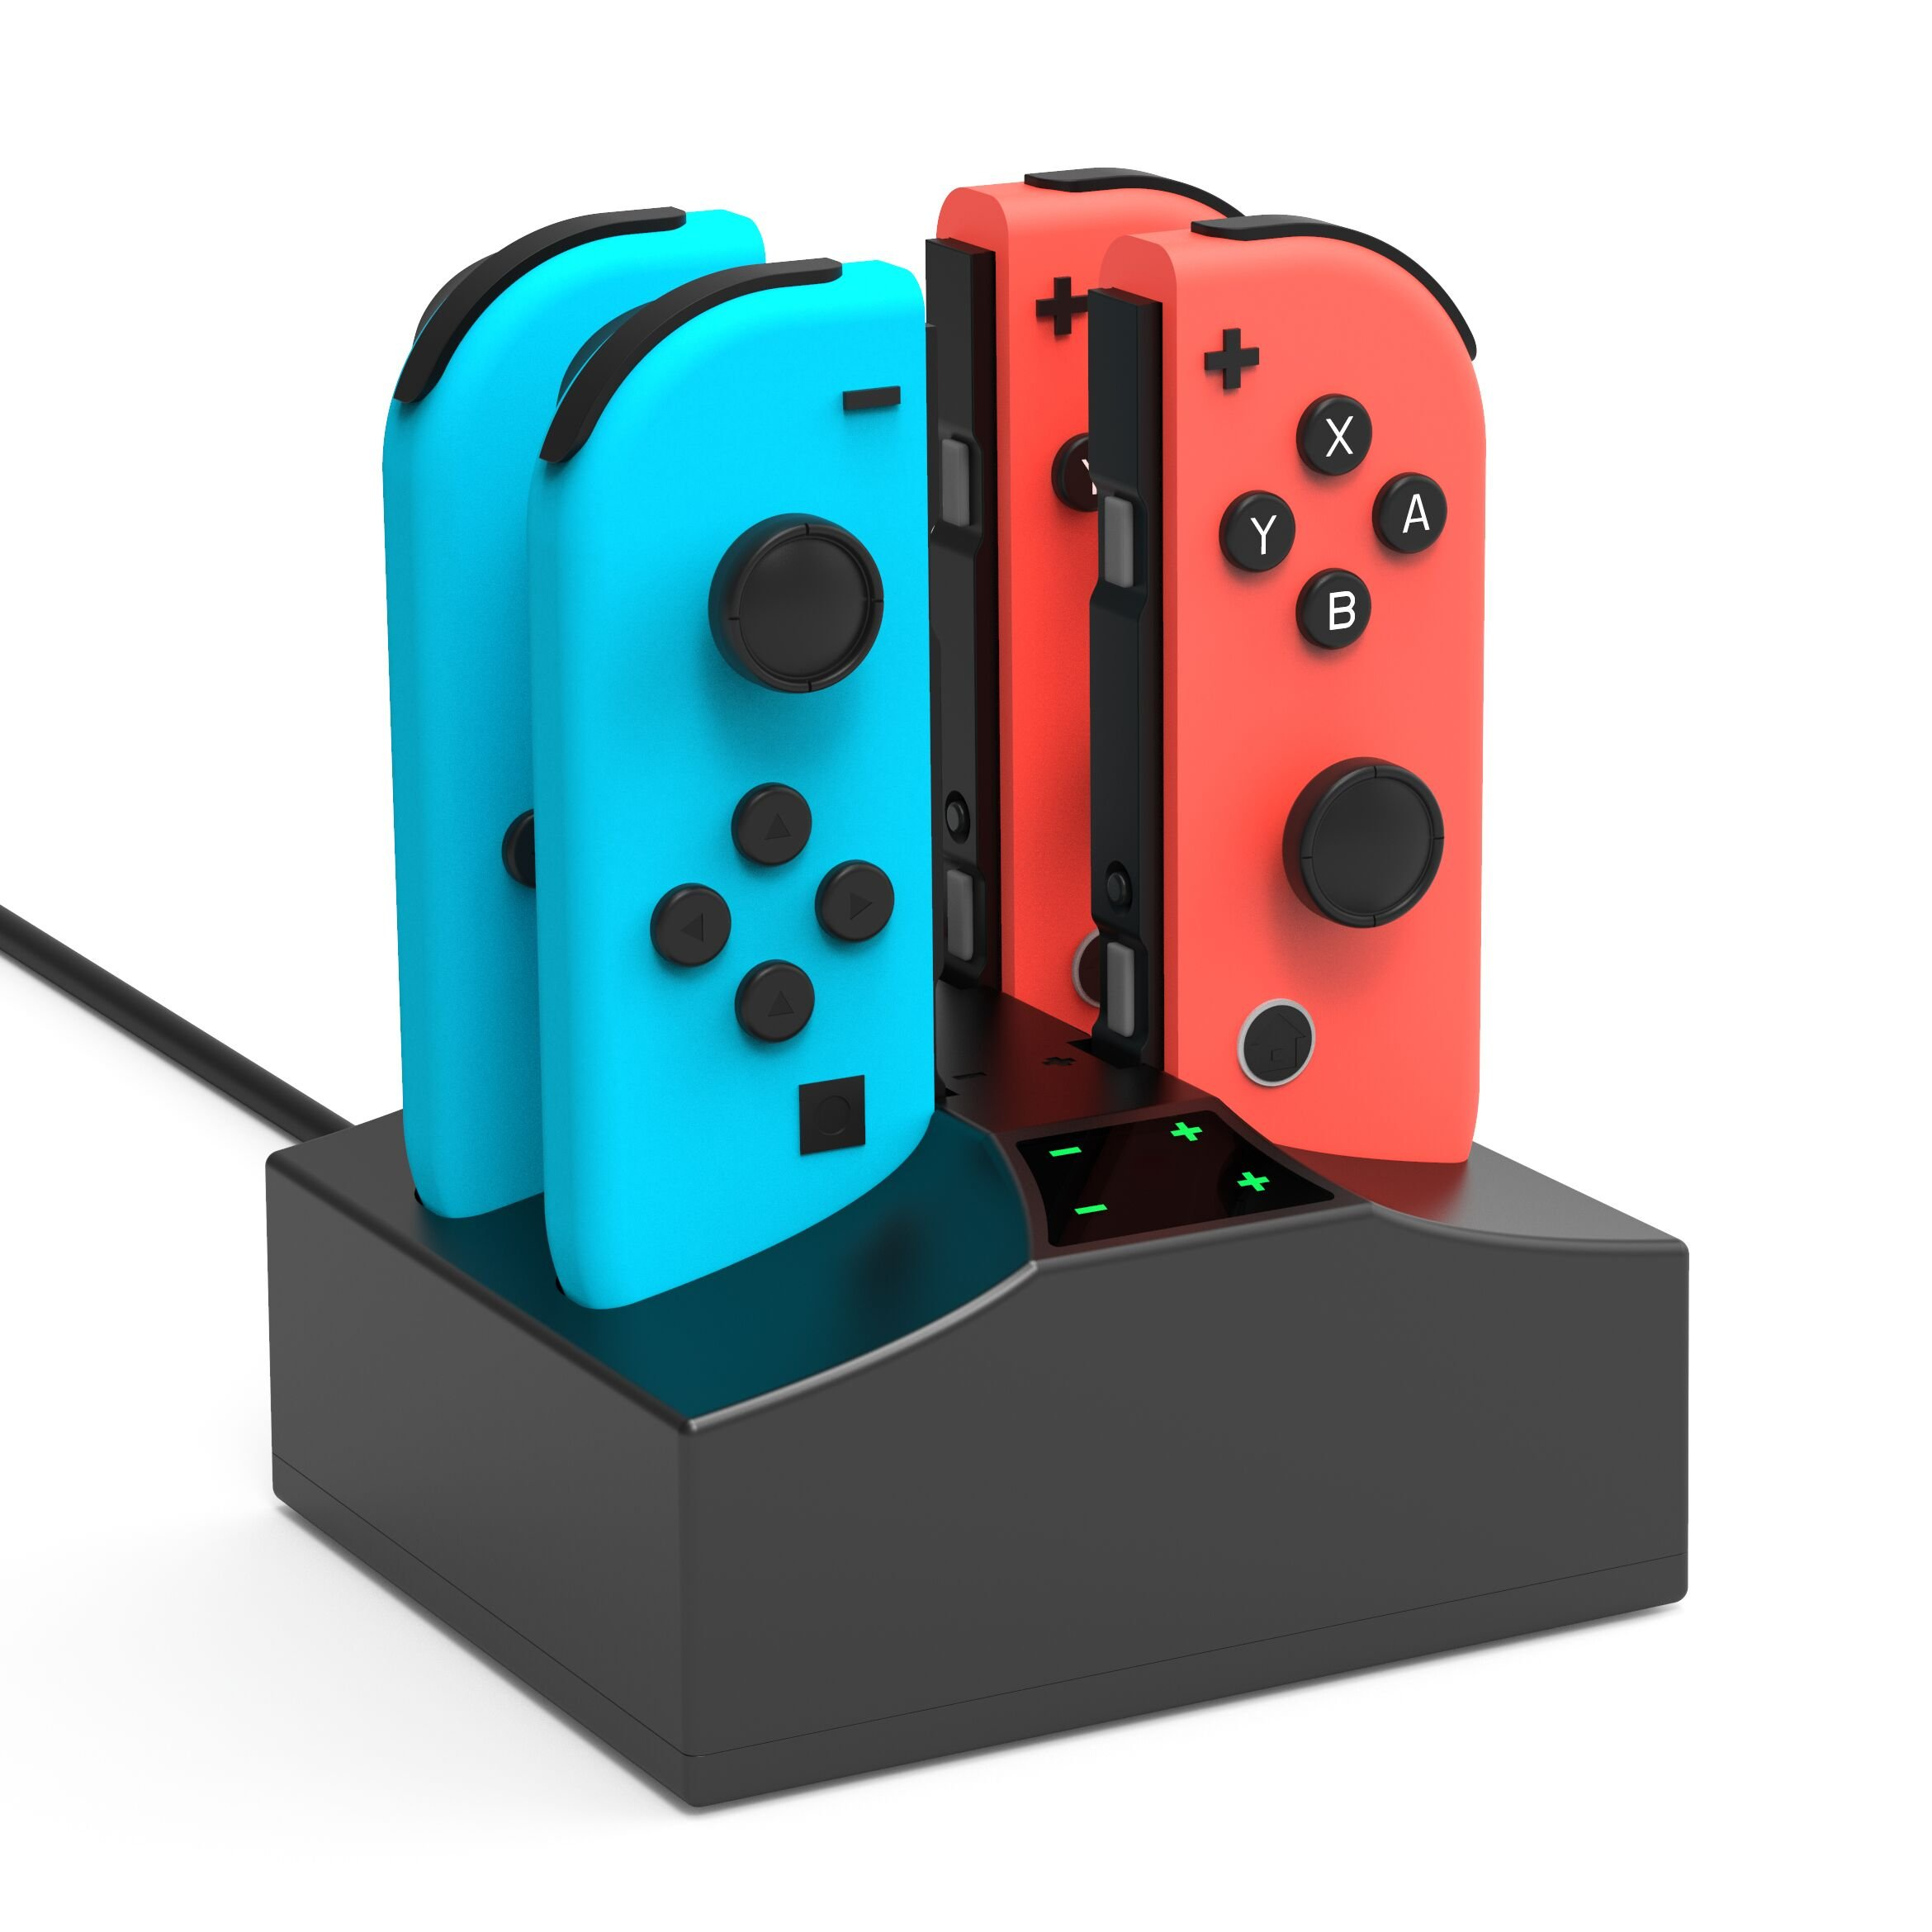 YCCSKY Charging Station Joy-Con Charging Dock 4 in 1 Charger Stand with Type C Cable for Nintendo Switch Controller by YCCSKY